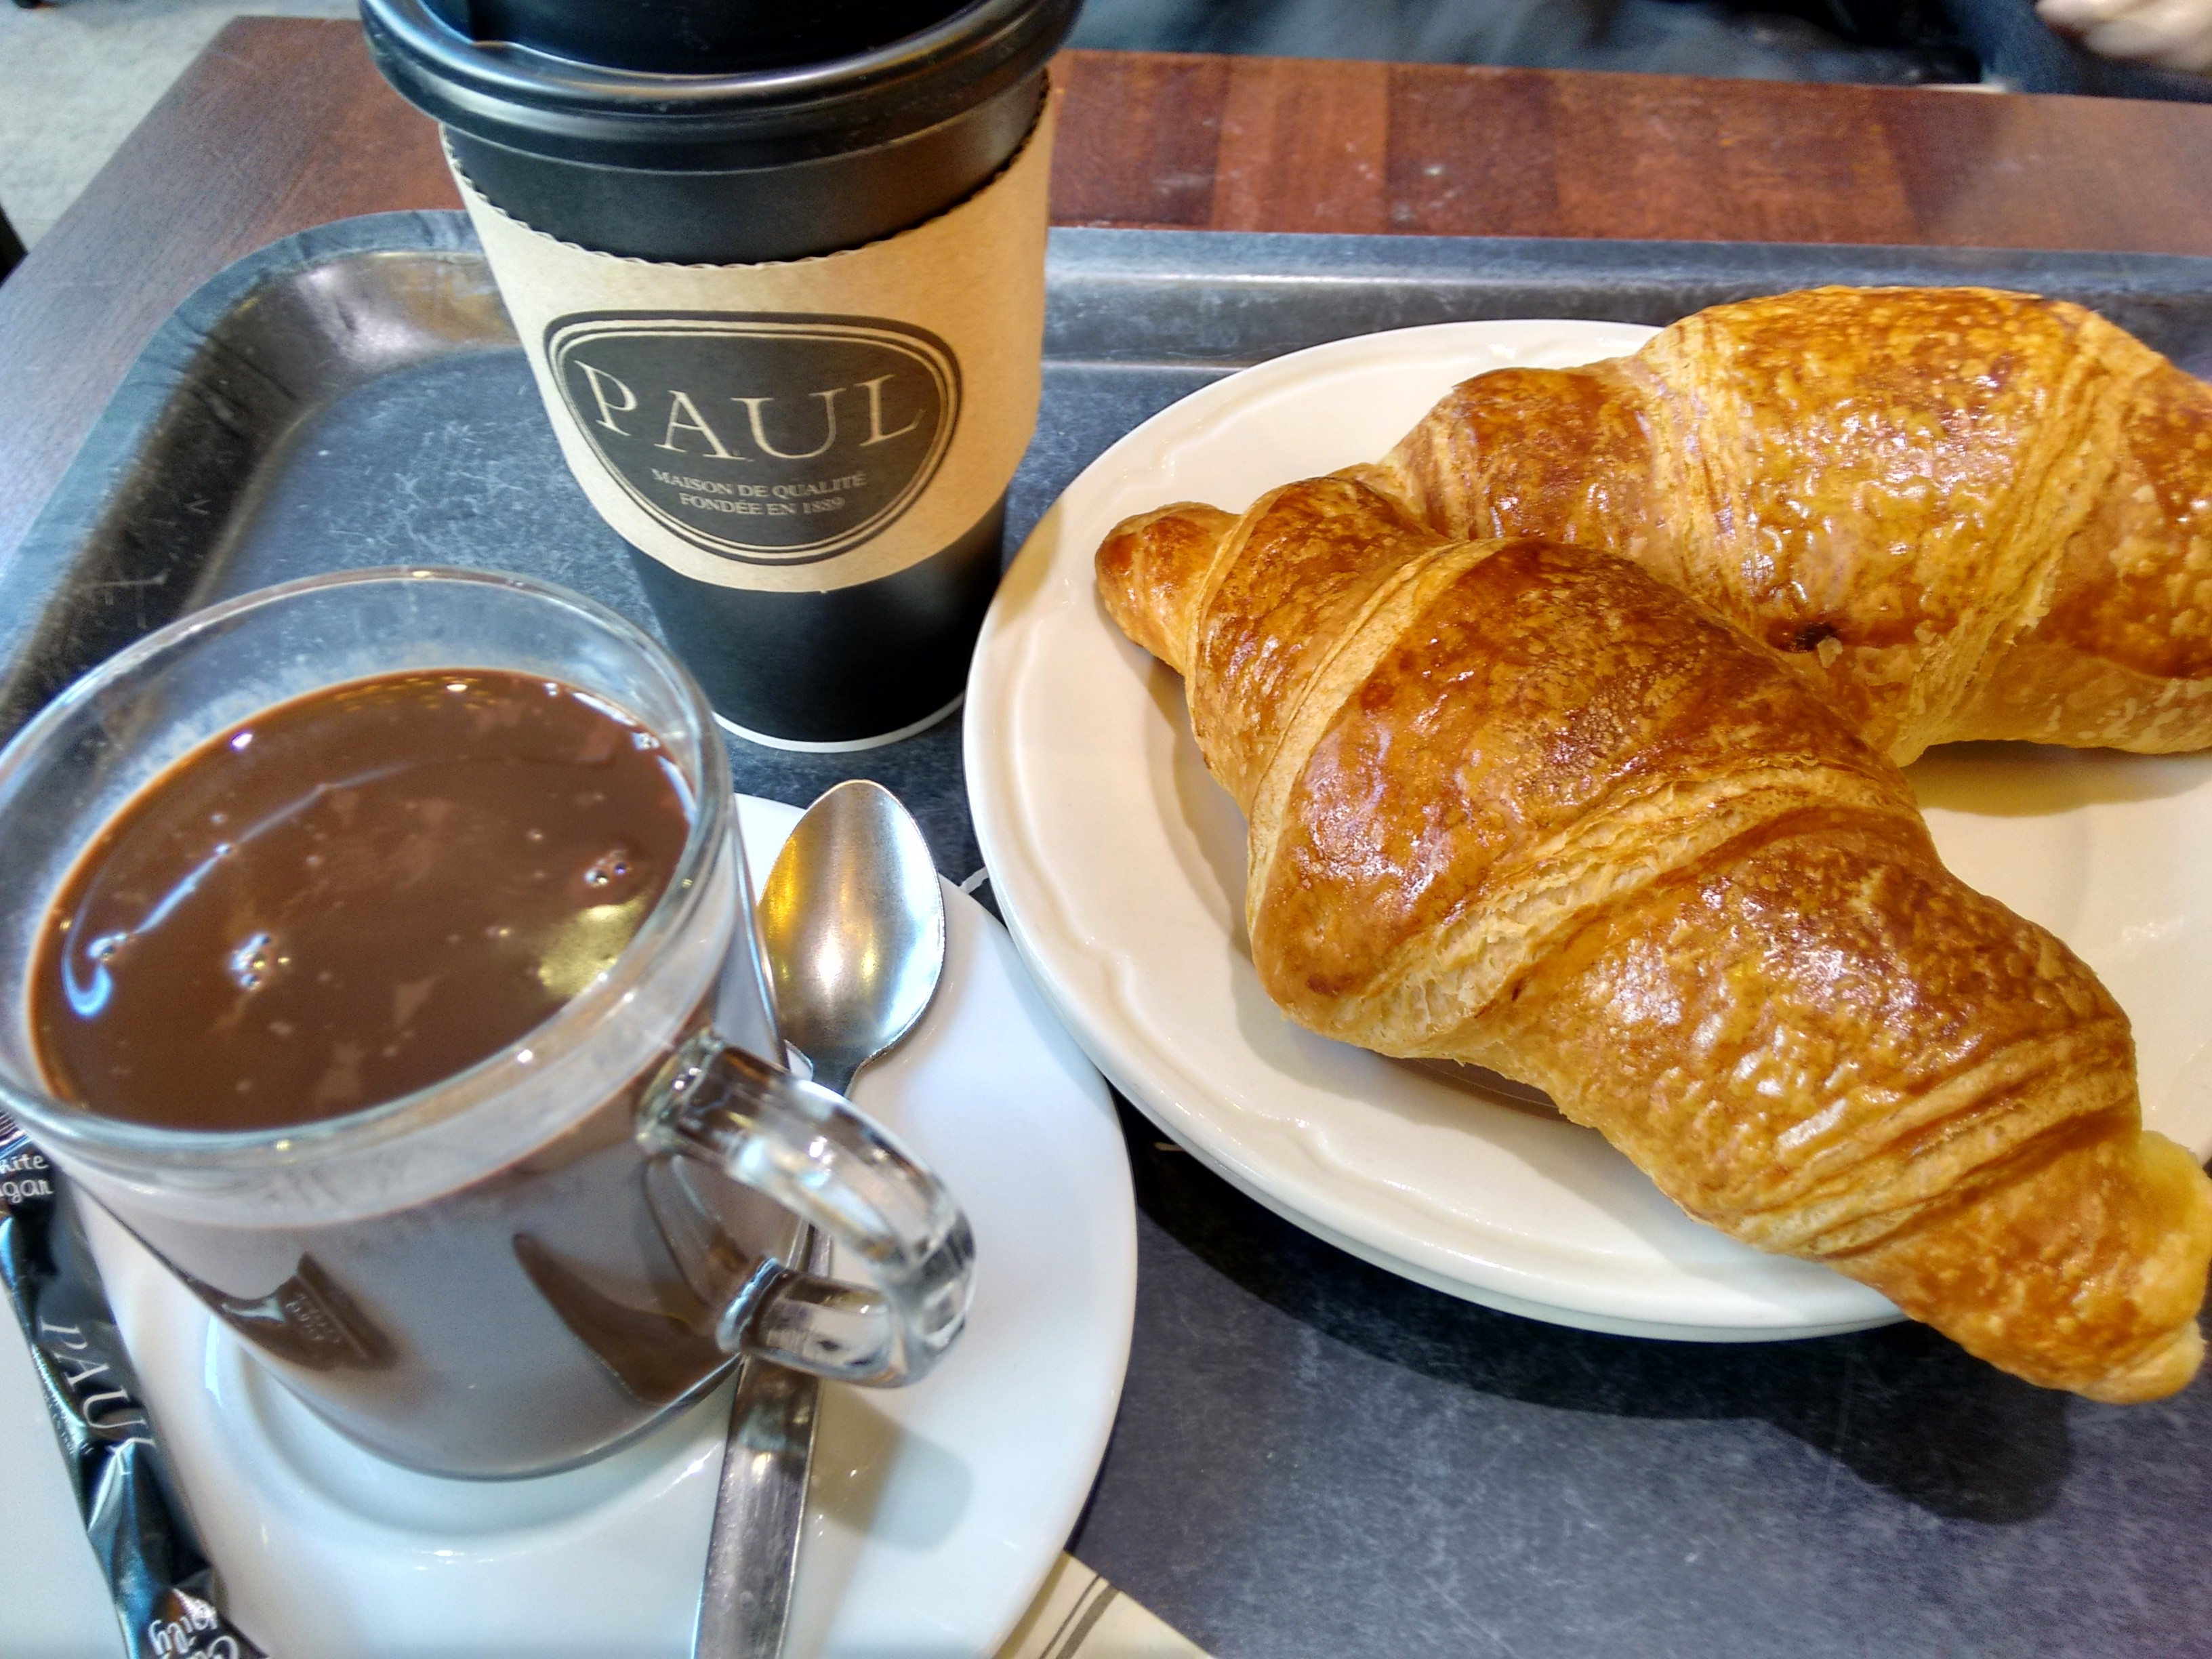 Breakfast at Paul's - Paris